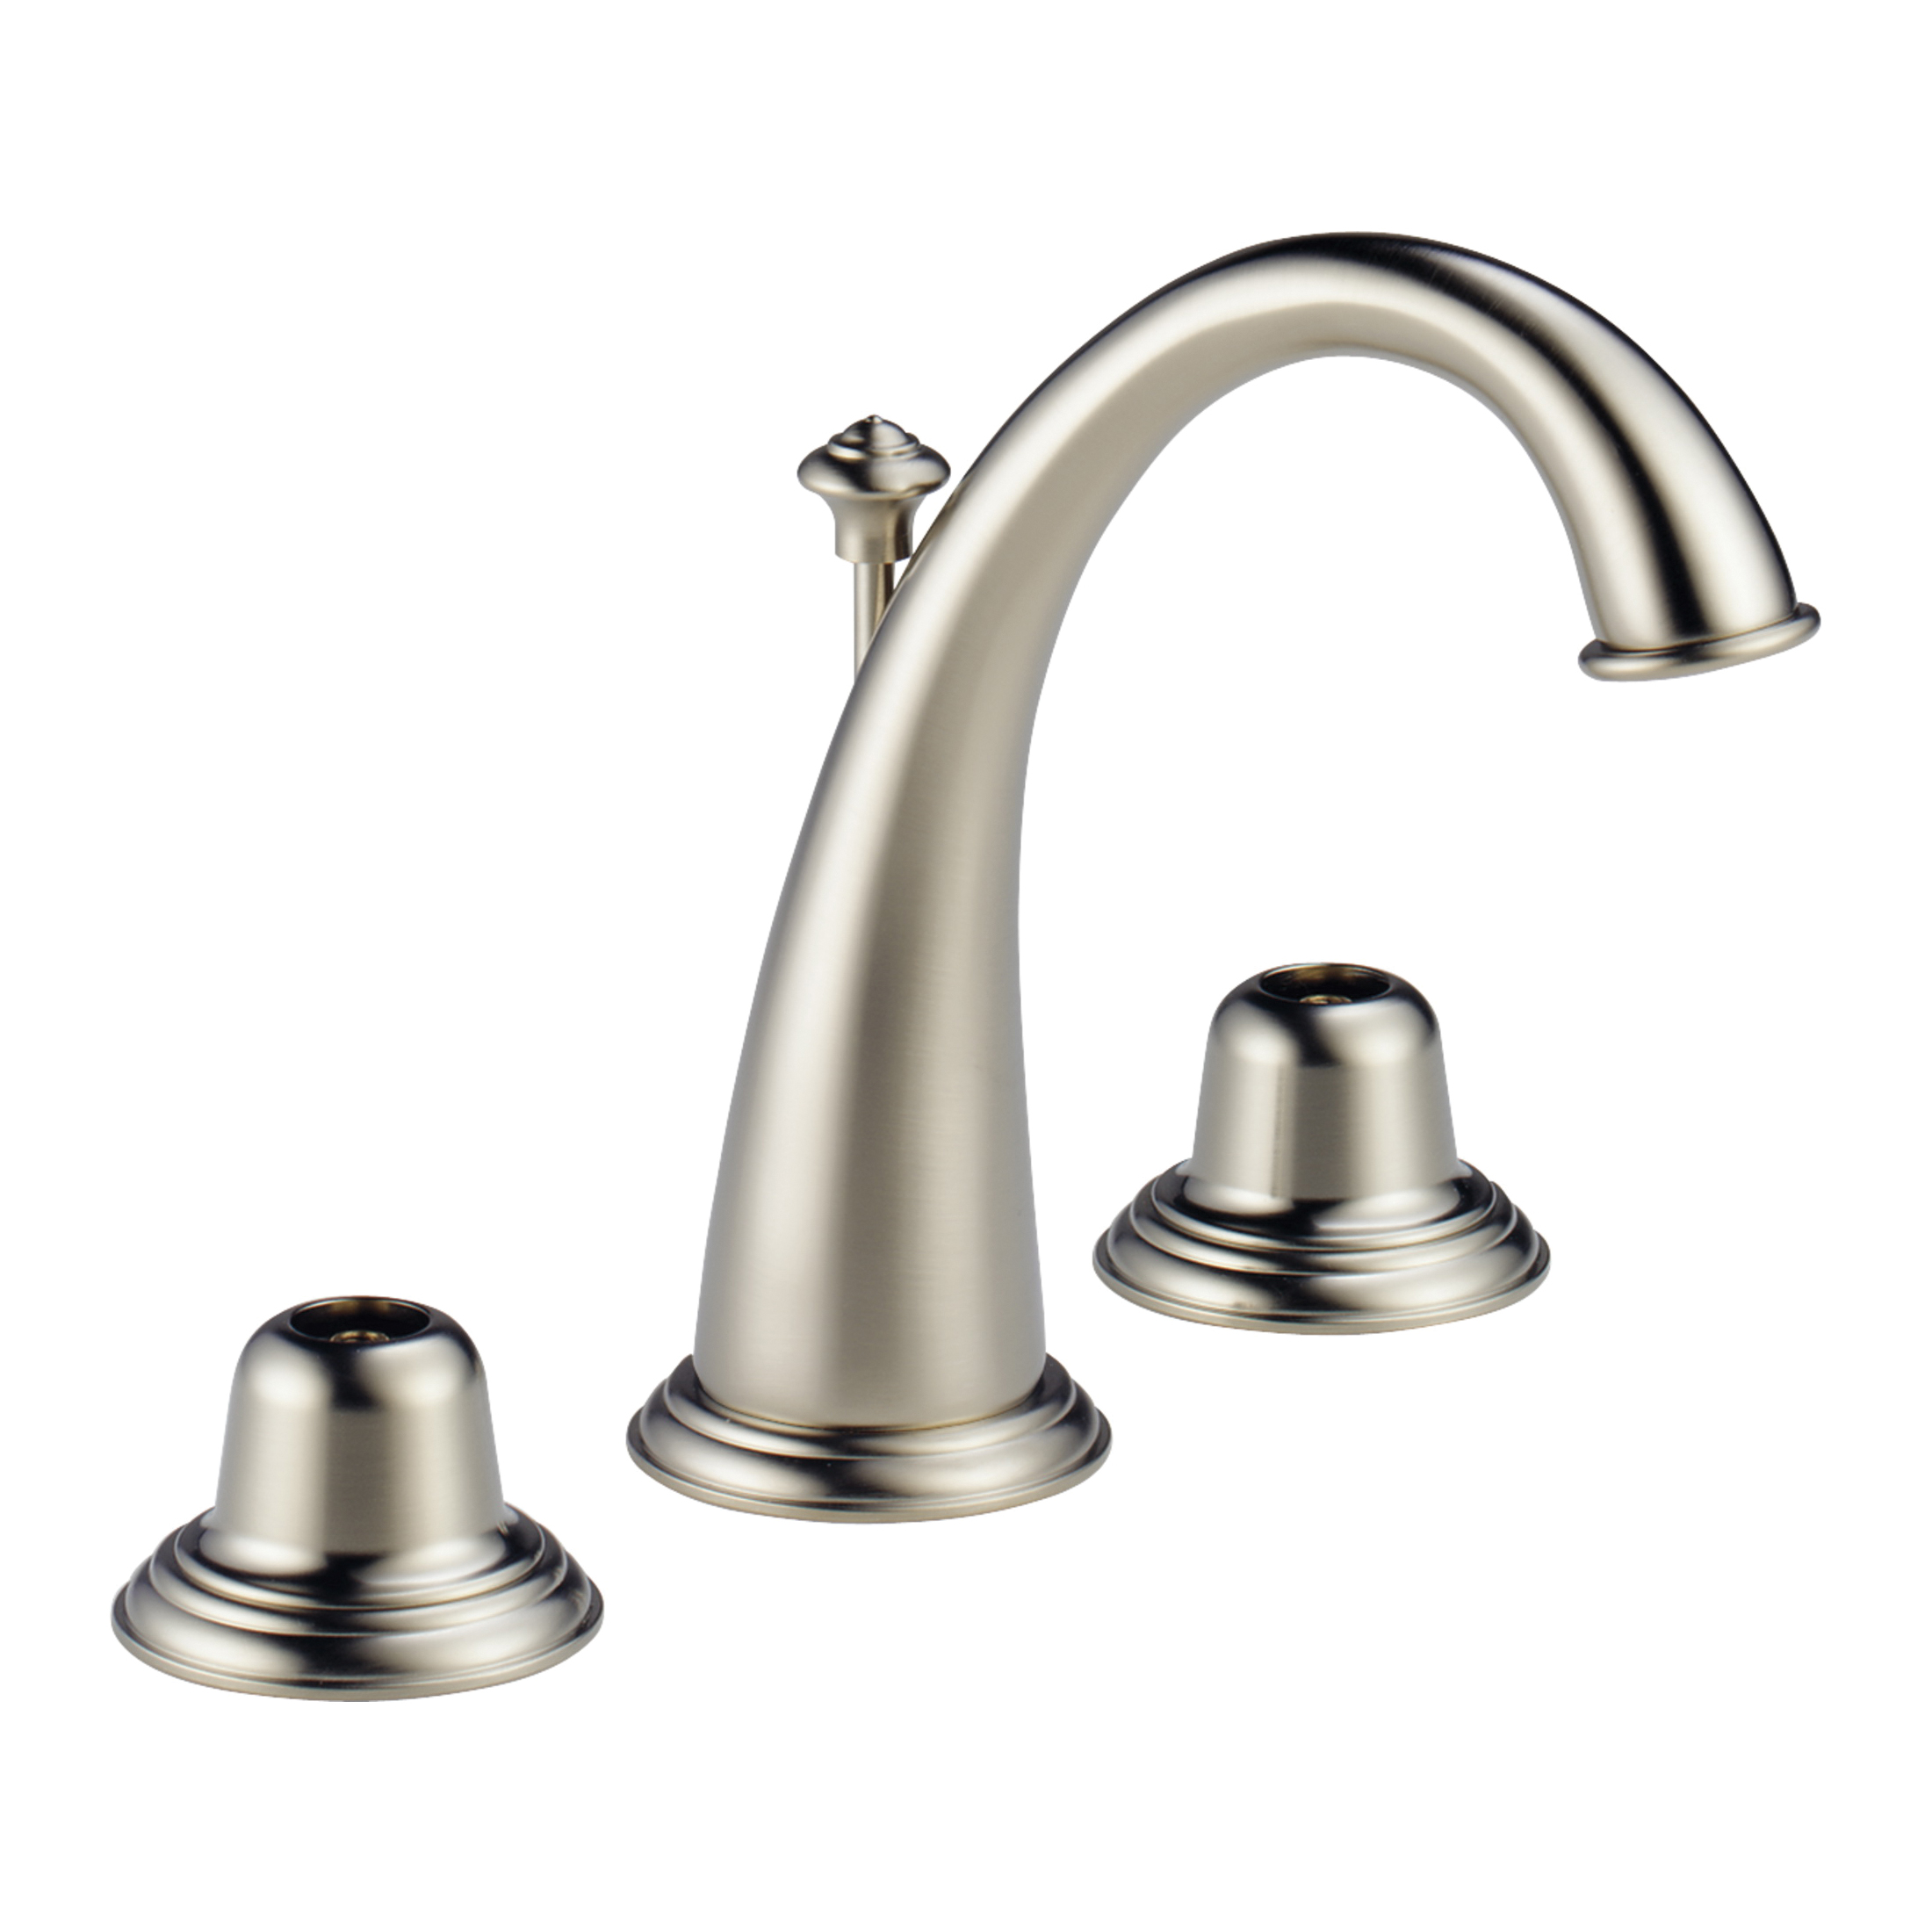 Brizo® 6520LF-BNLHP Providence™ Classic™ and Belle™ Widespread Lavatory Faucet Without Handle, 1.5 gpm, 4-3/4 in H Spout, 6 to 16 in Center, Brushed Nickel, Pop-Up Drain, Domestic, Commercial